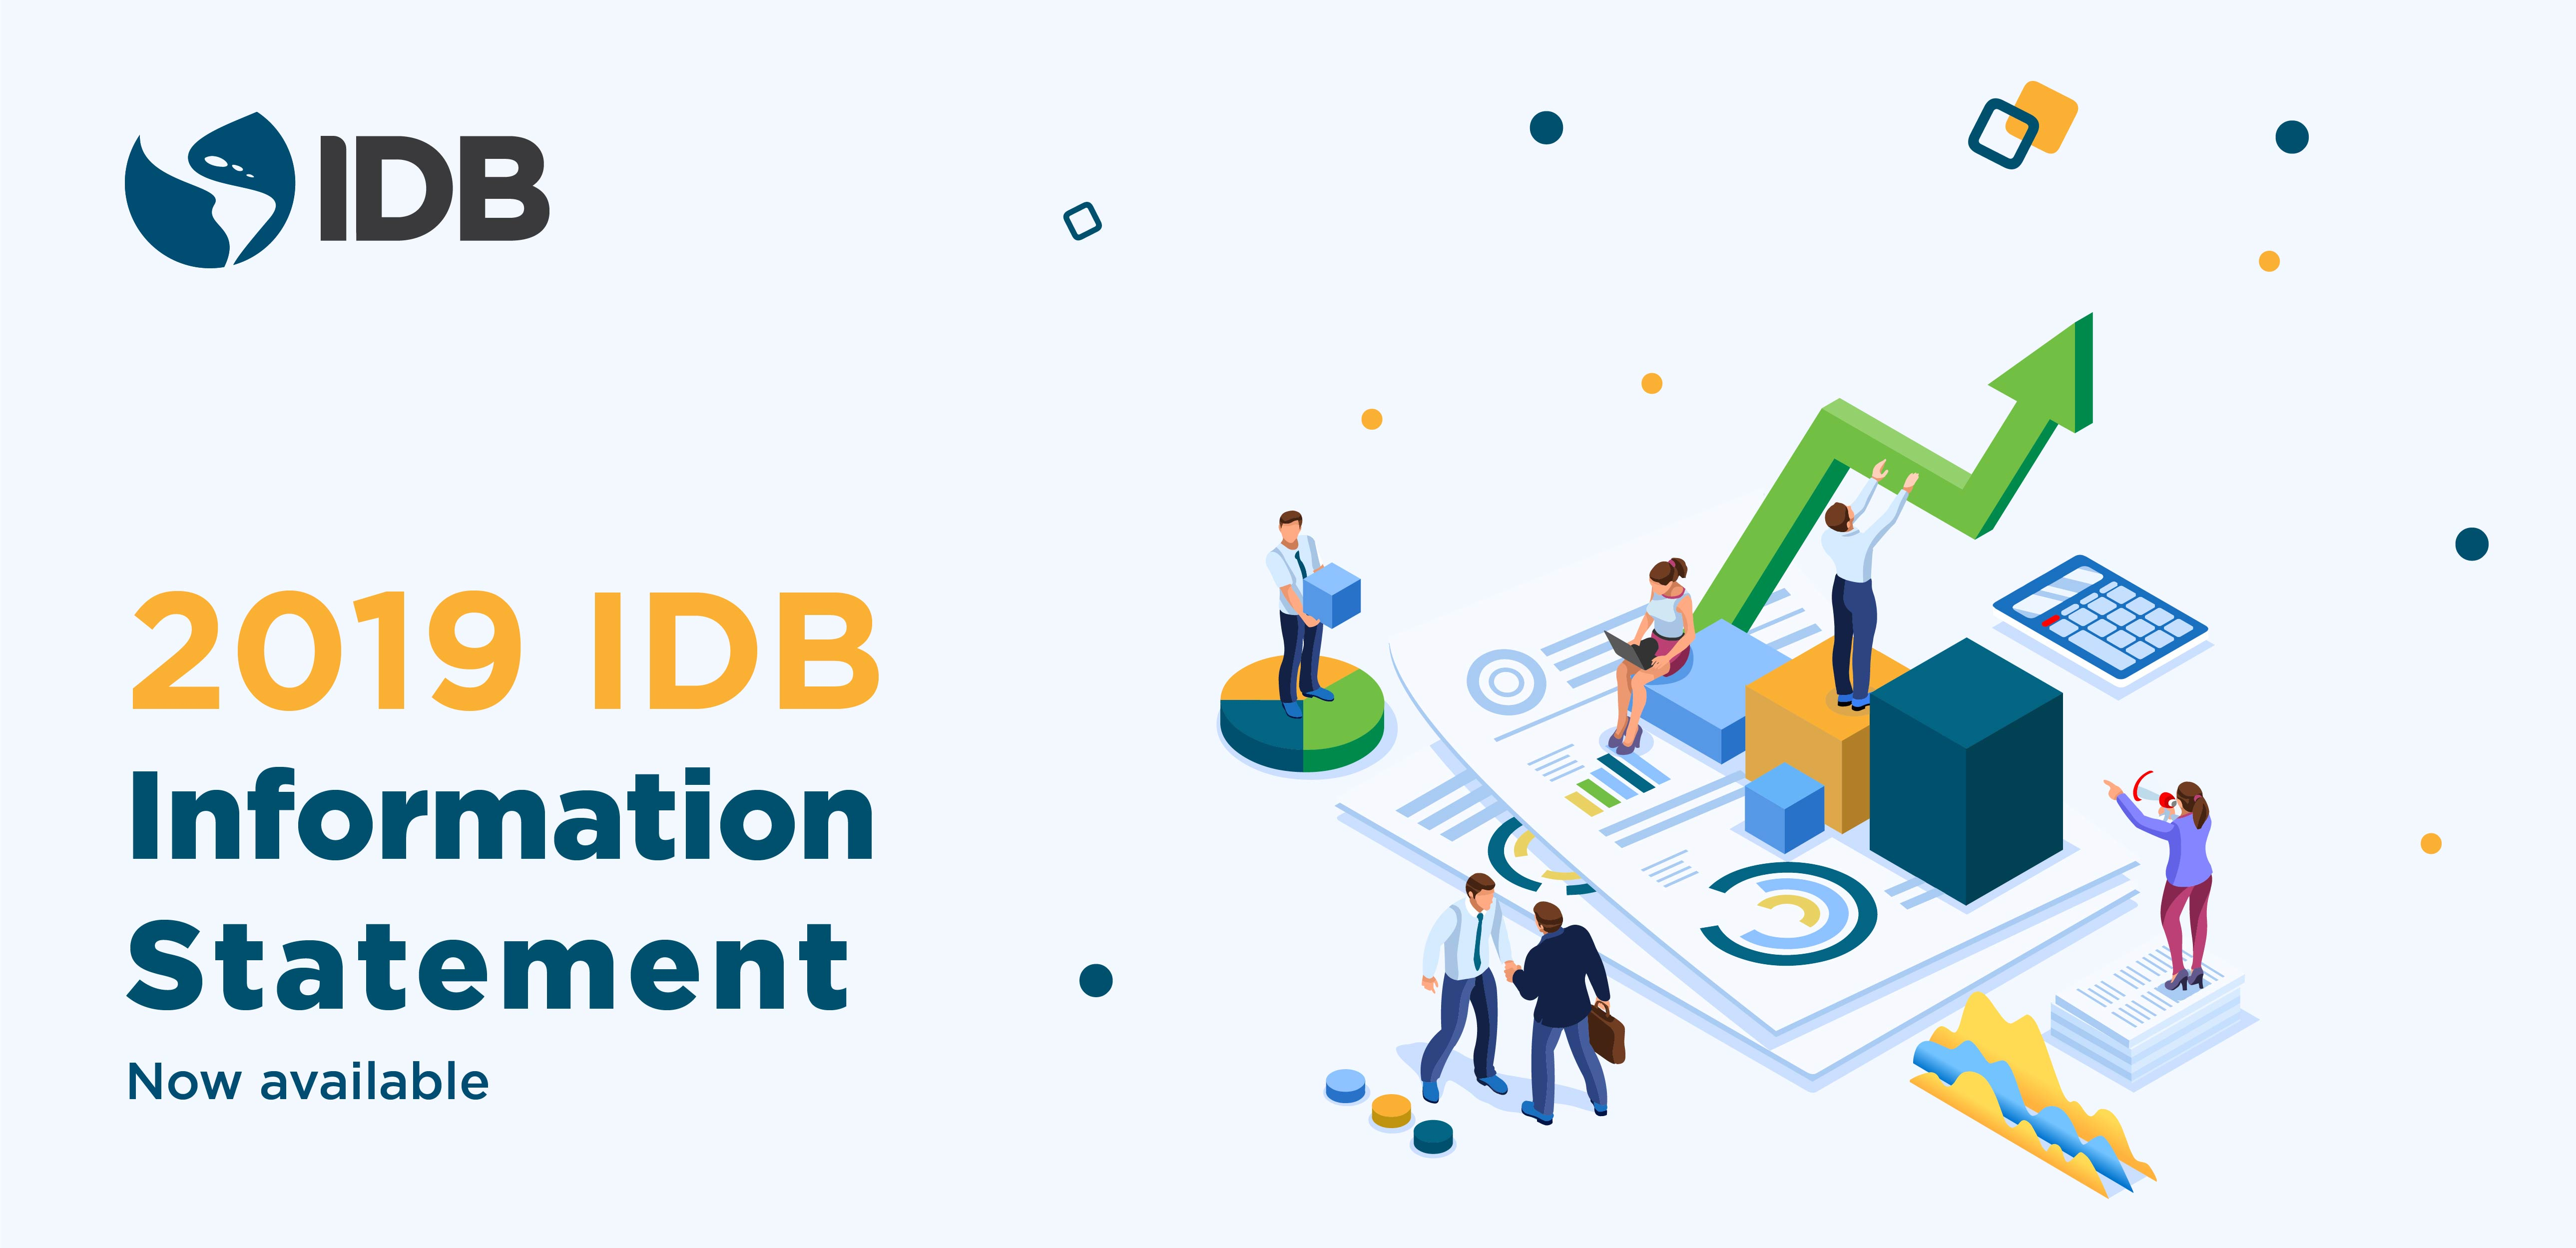 2019 IDB Financial Statement